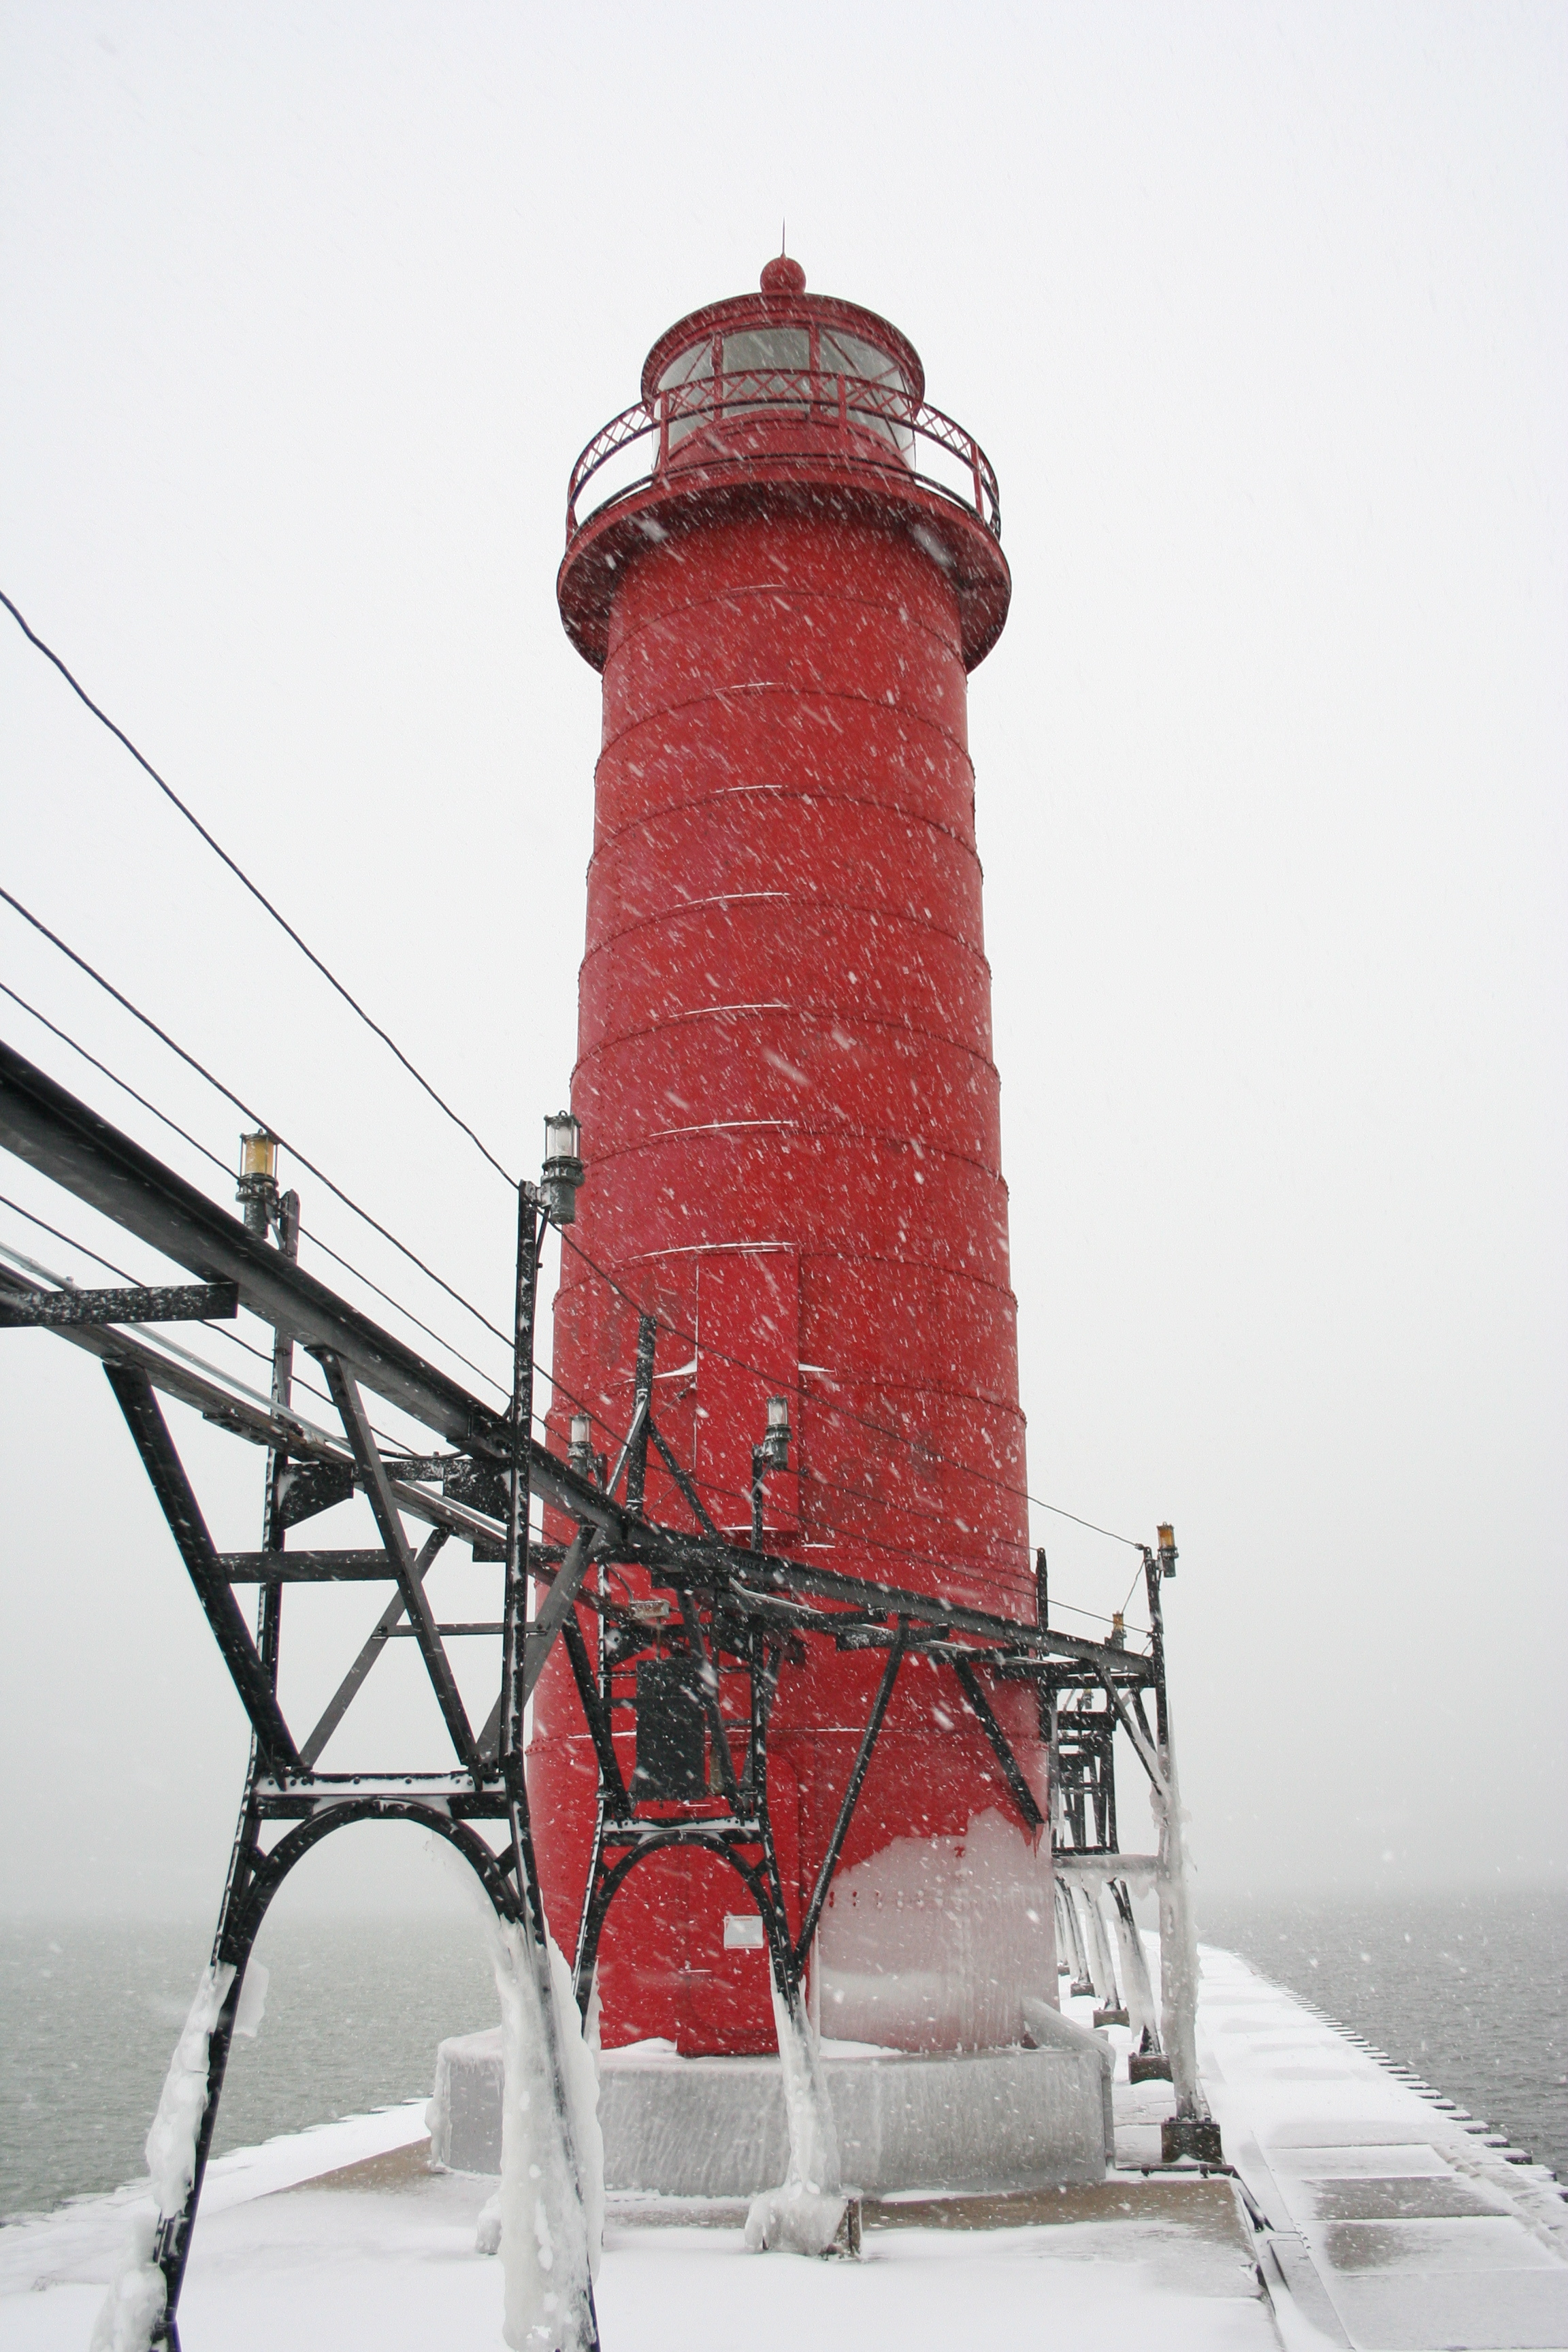 the round lighthouse